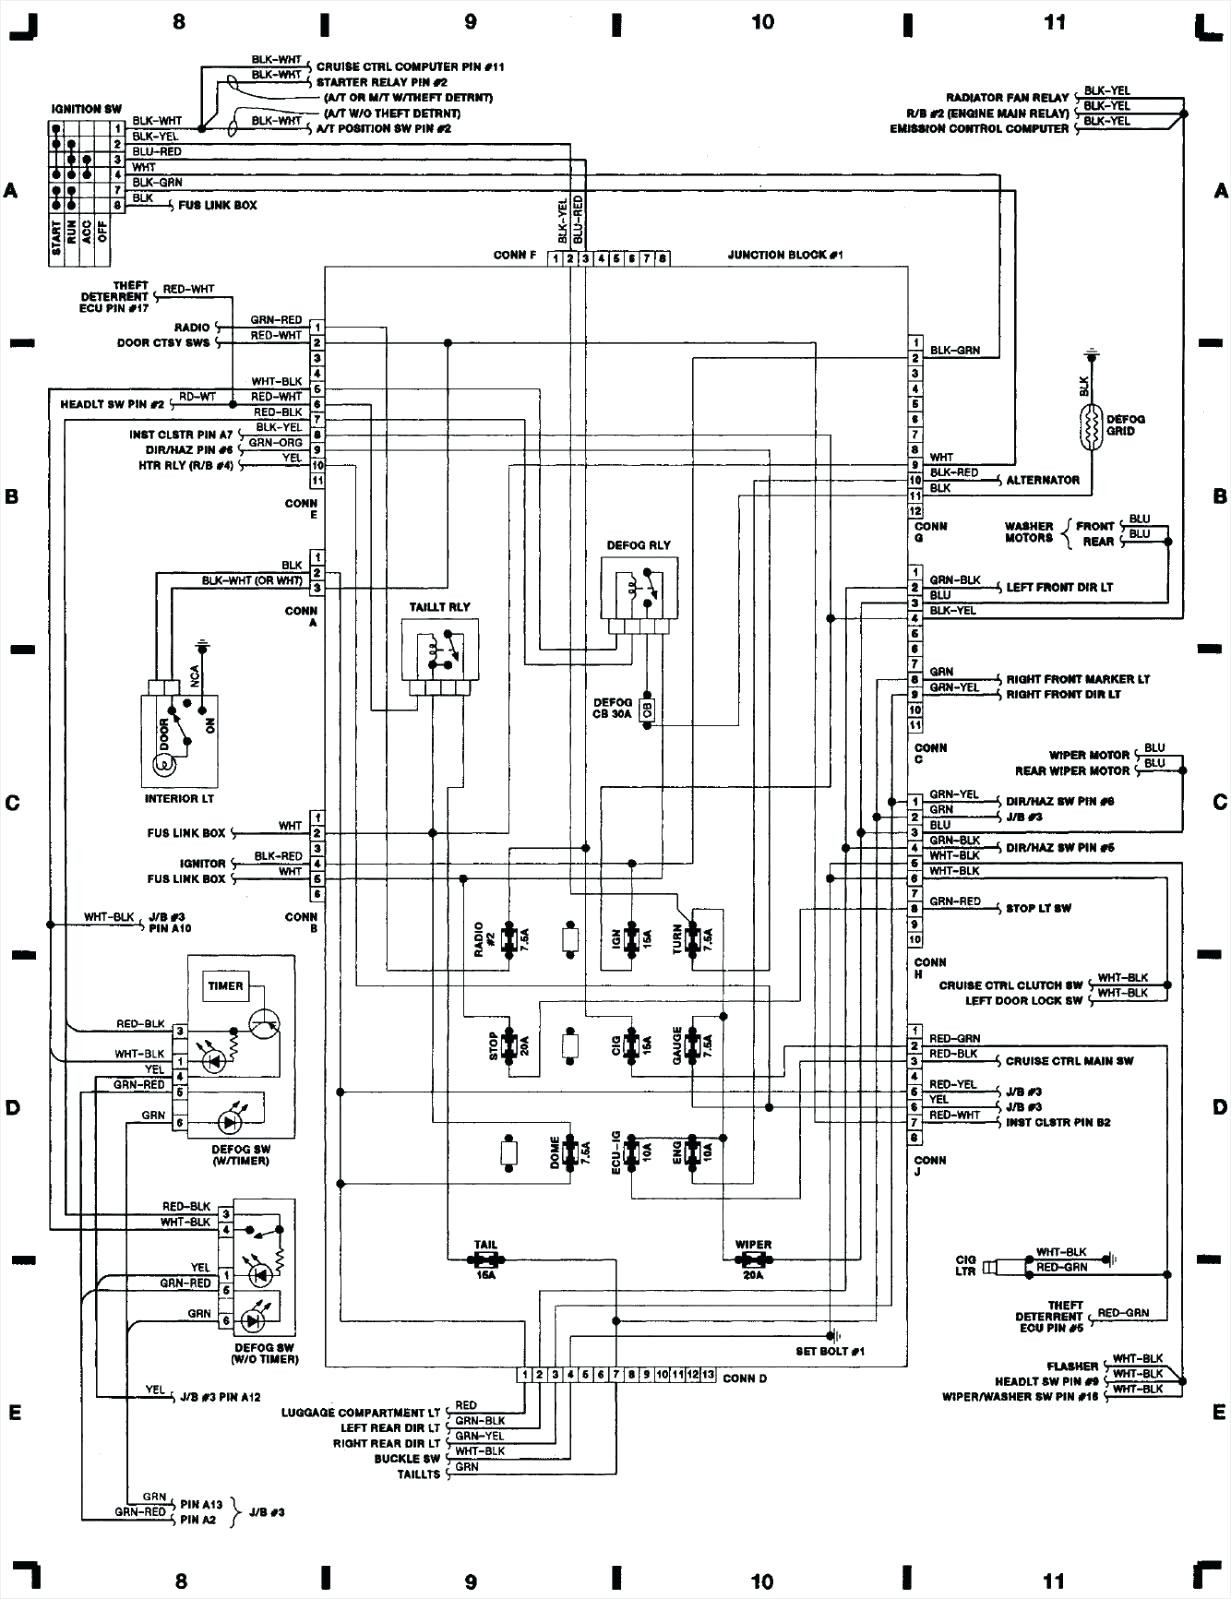 95 toyota Camry Engine Diagram 1998 Camry Fuse Diagram Wiring Diagram Of 95 toyota Camry Engine Diagram